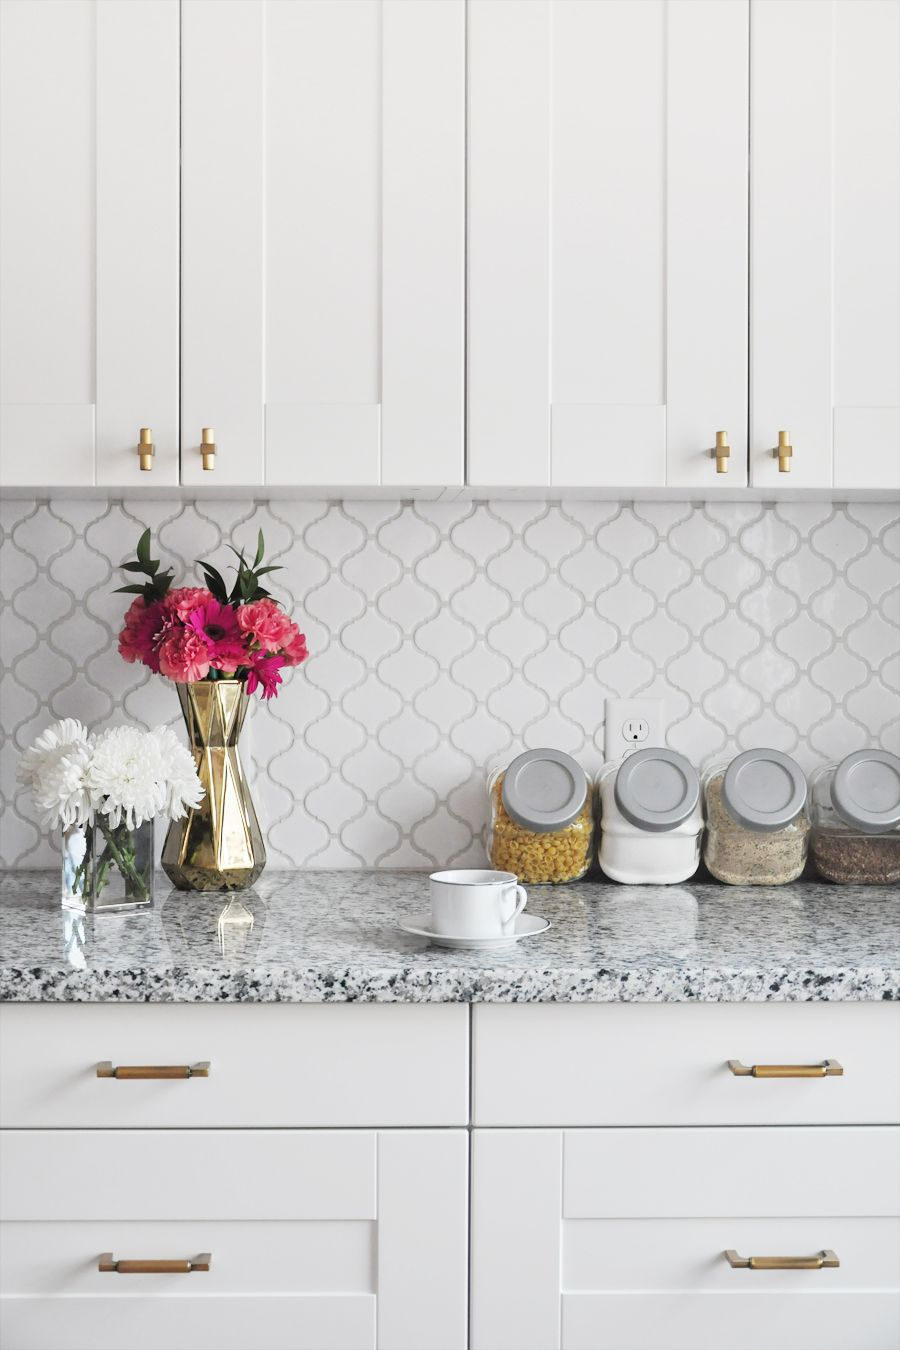 White Kitchen Backsplash Ideas Part - 18: How To Tile A Kitchen Backsplash: DIY Tutorial